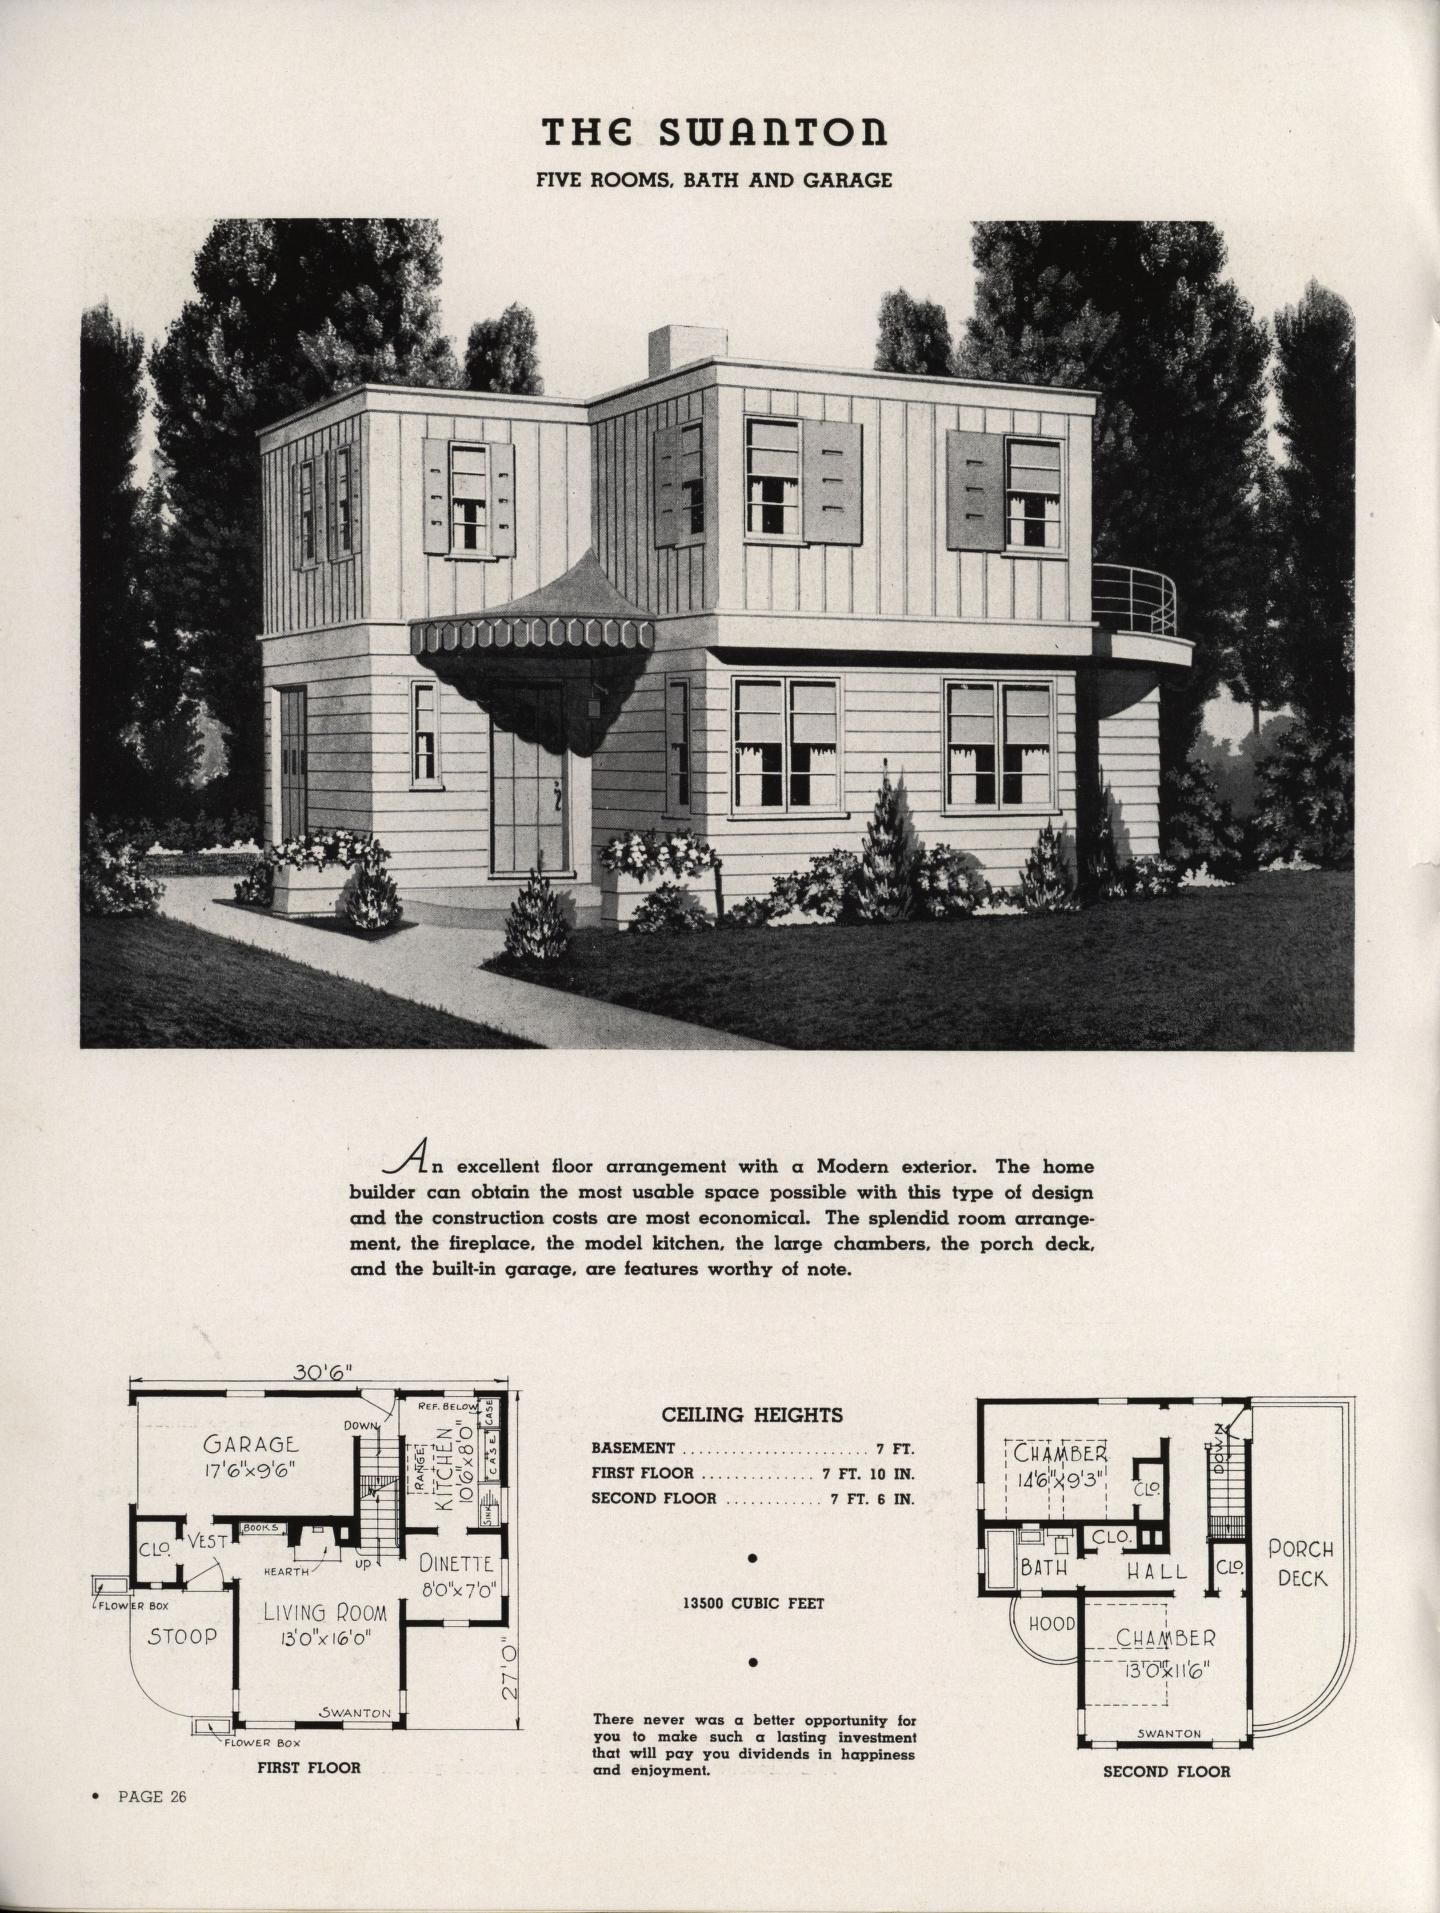 Select Homes Of Moderate Cost Vintage House Plans House Plans Art Deco Home